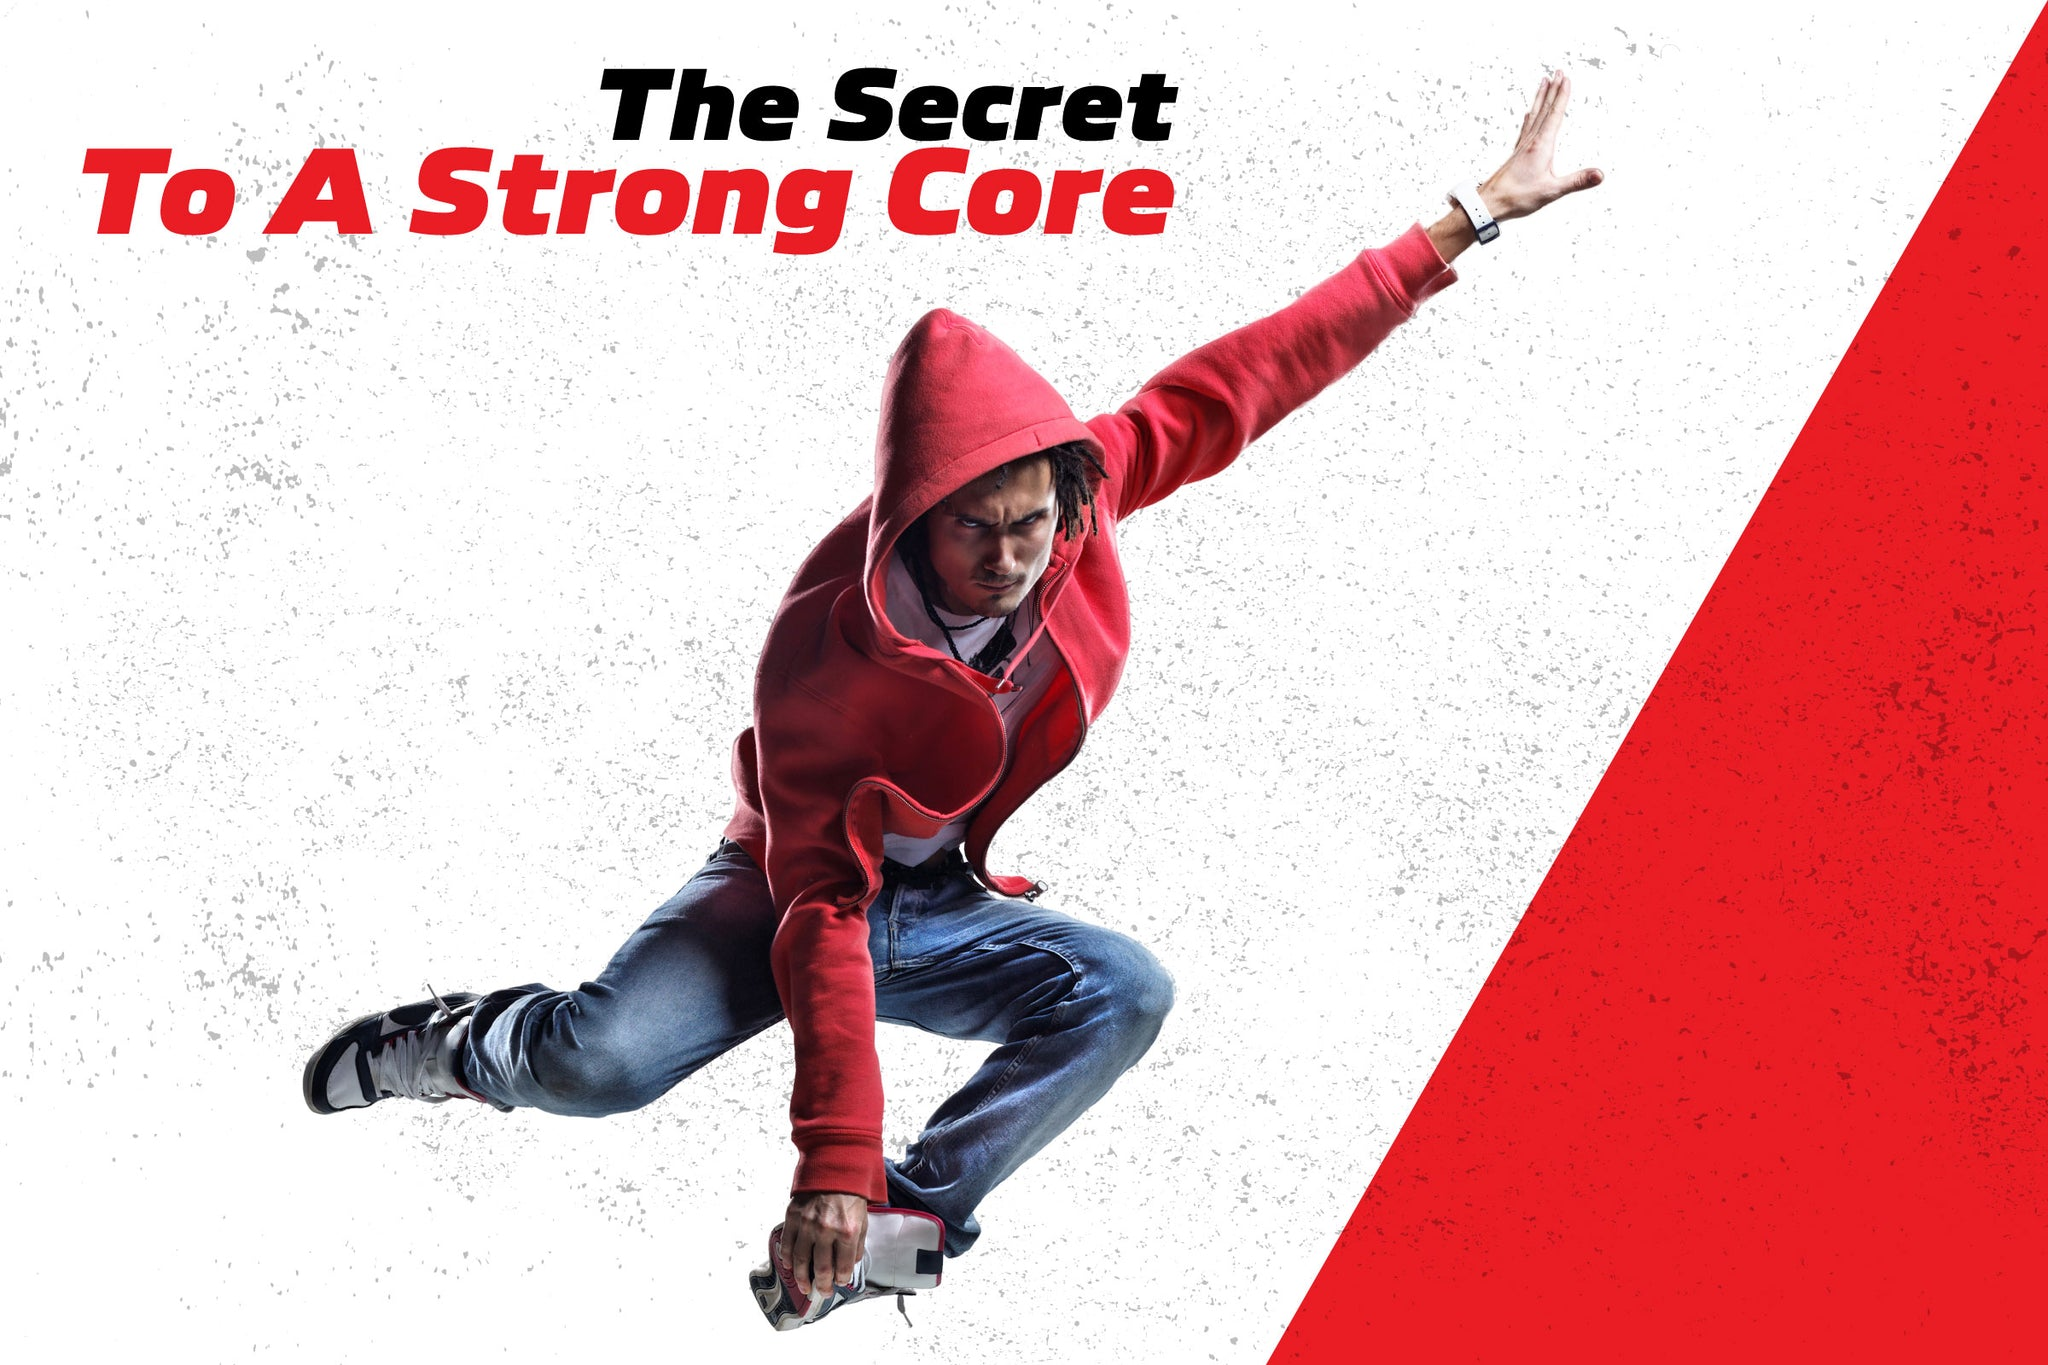 The Secret To A Strong Core